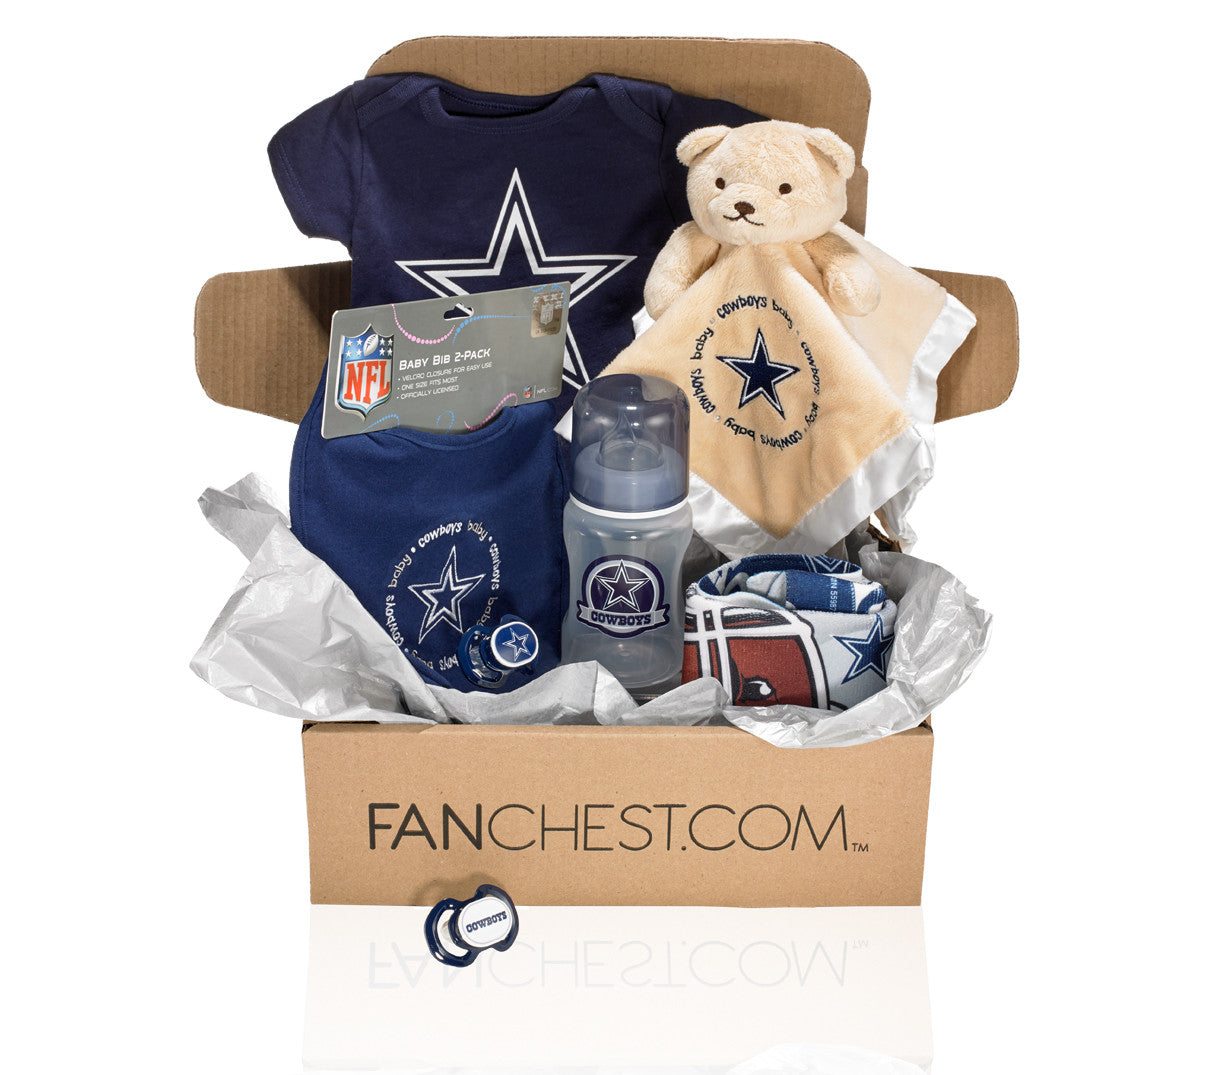 Dallas Cowboys Baby Gifts | Dallas Cowboys Baby Gear